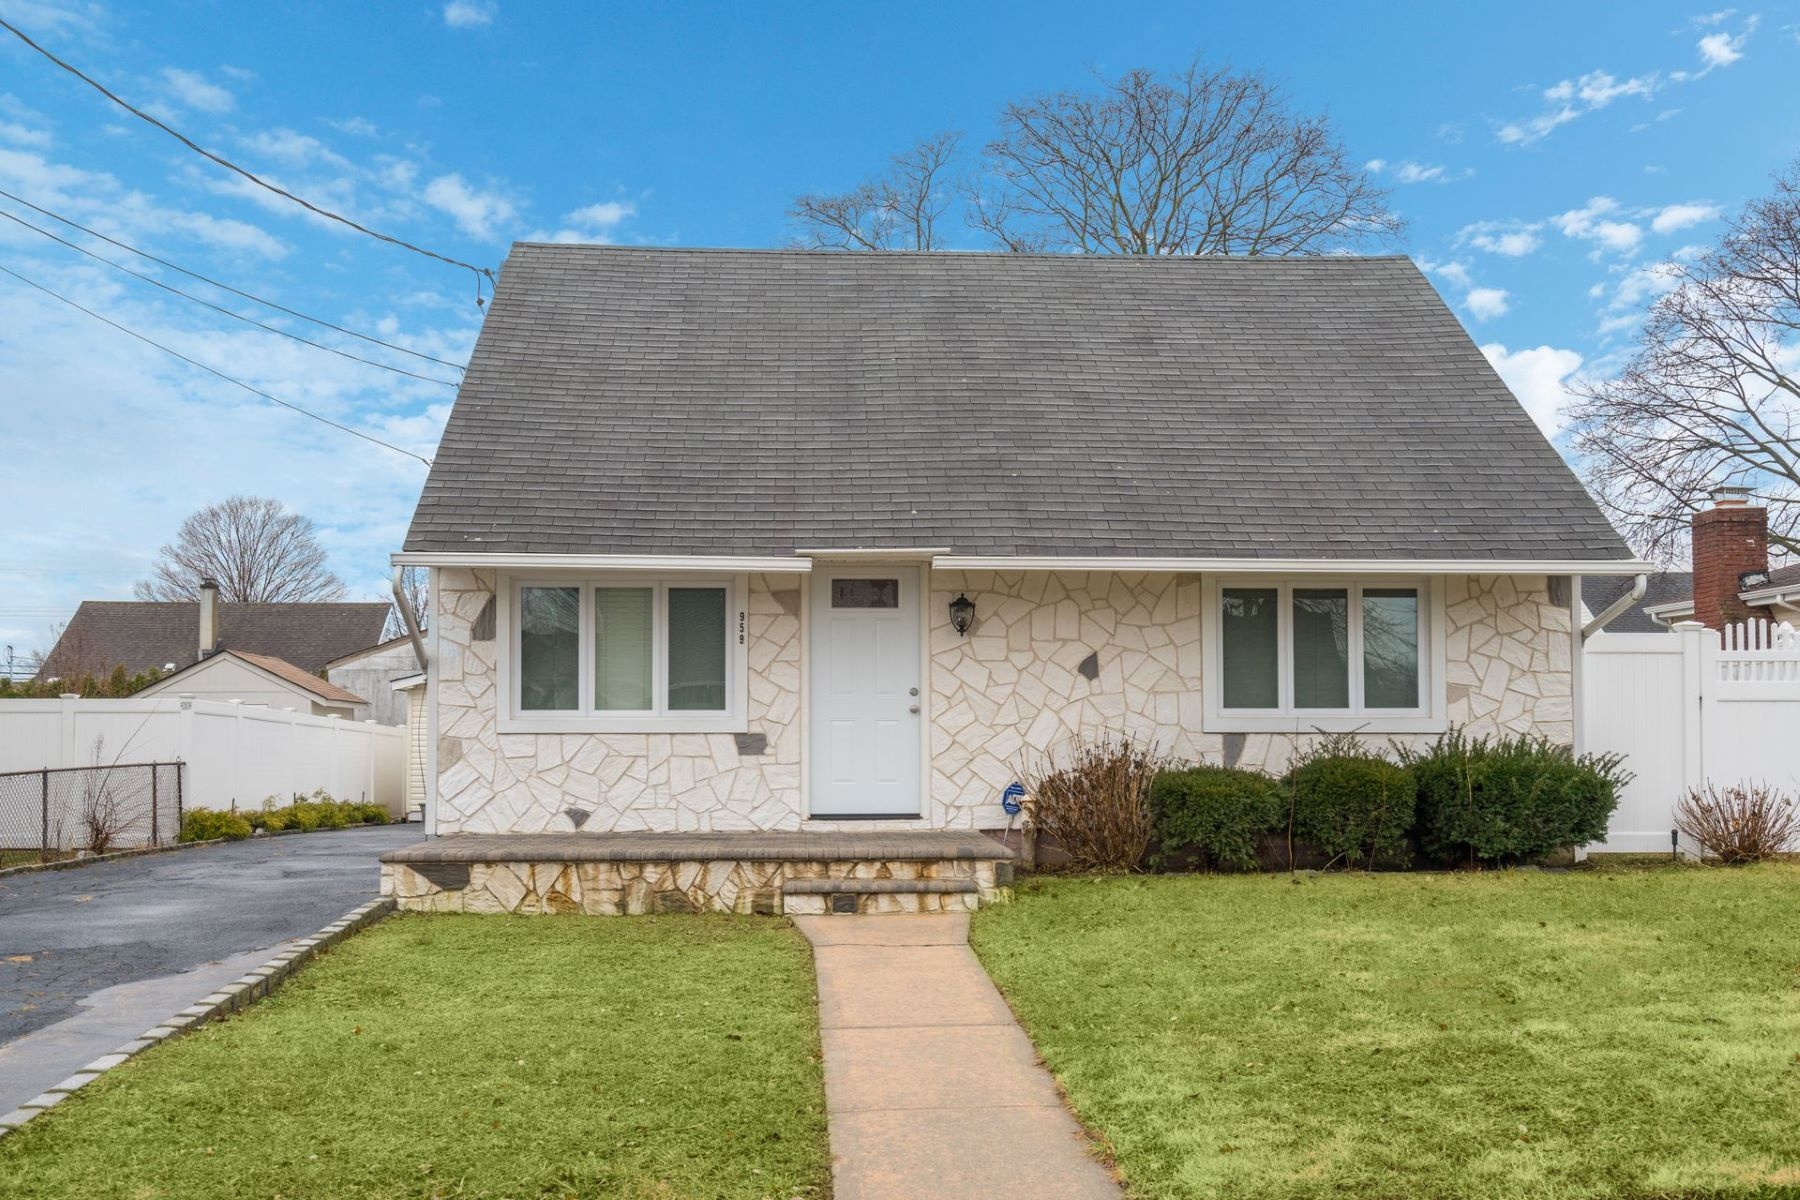 Single Family Homes for Active at Westbury 959 Bowling Green Drive Westbury, New York 11590 United States